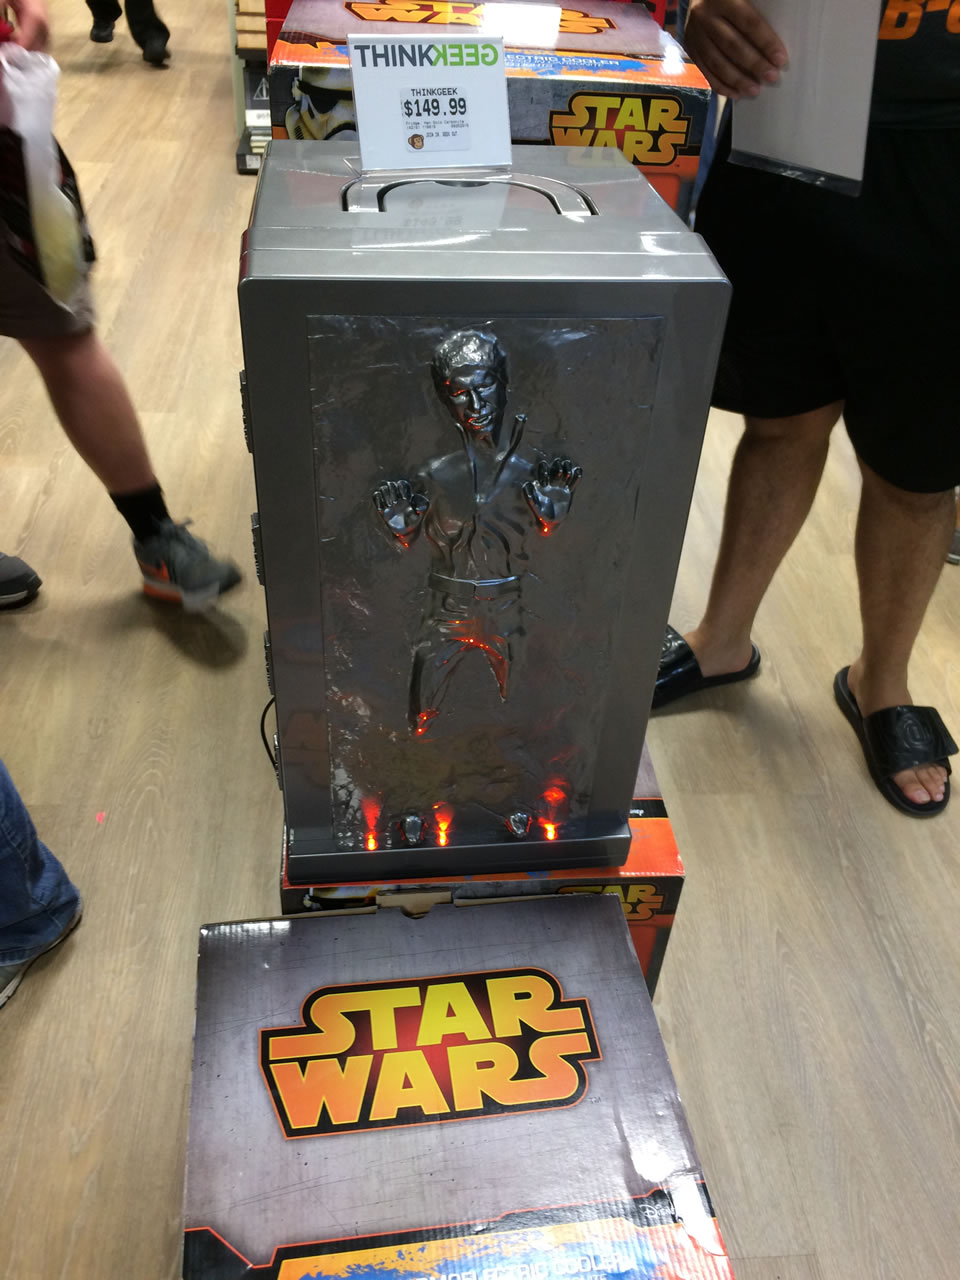 65 thinkgeek store - han solo fridge